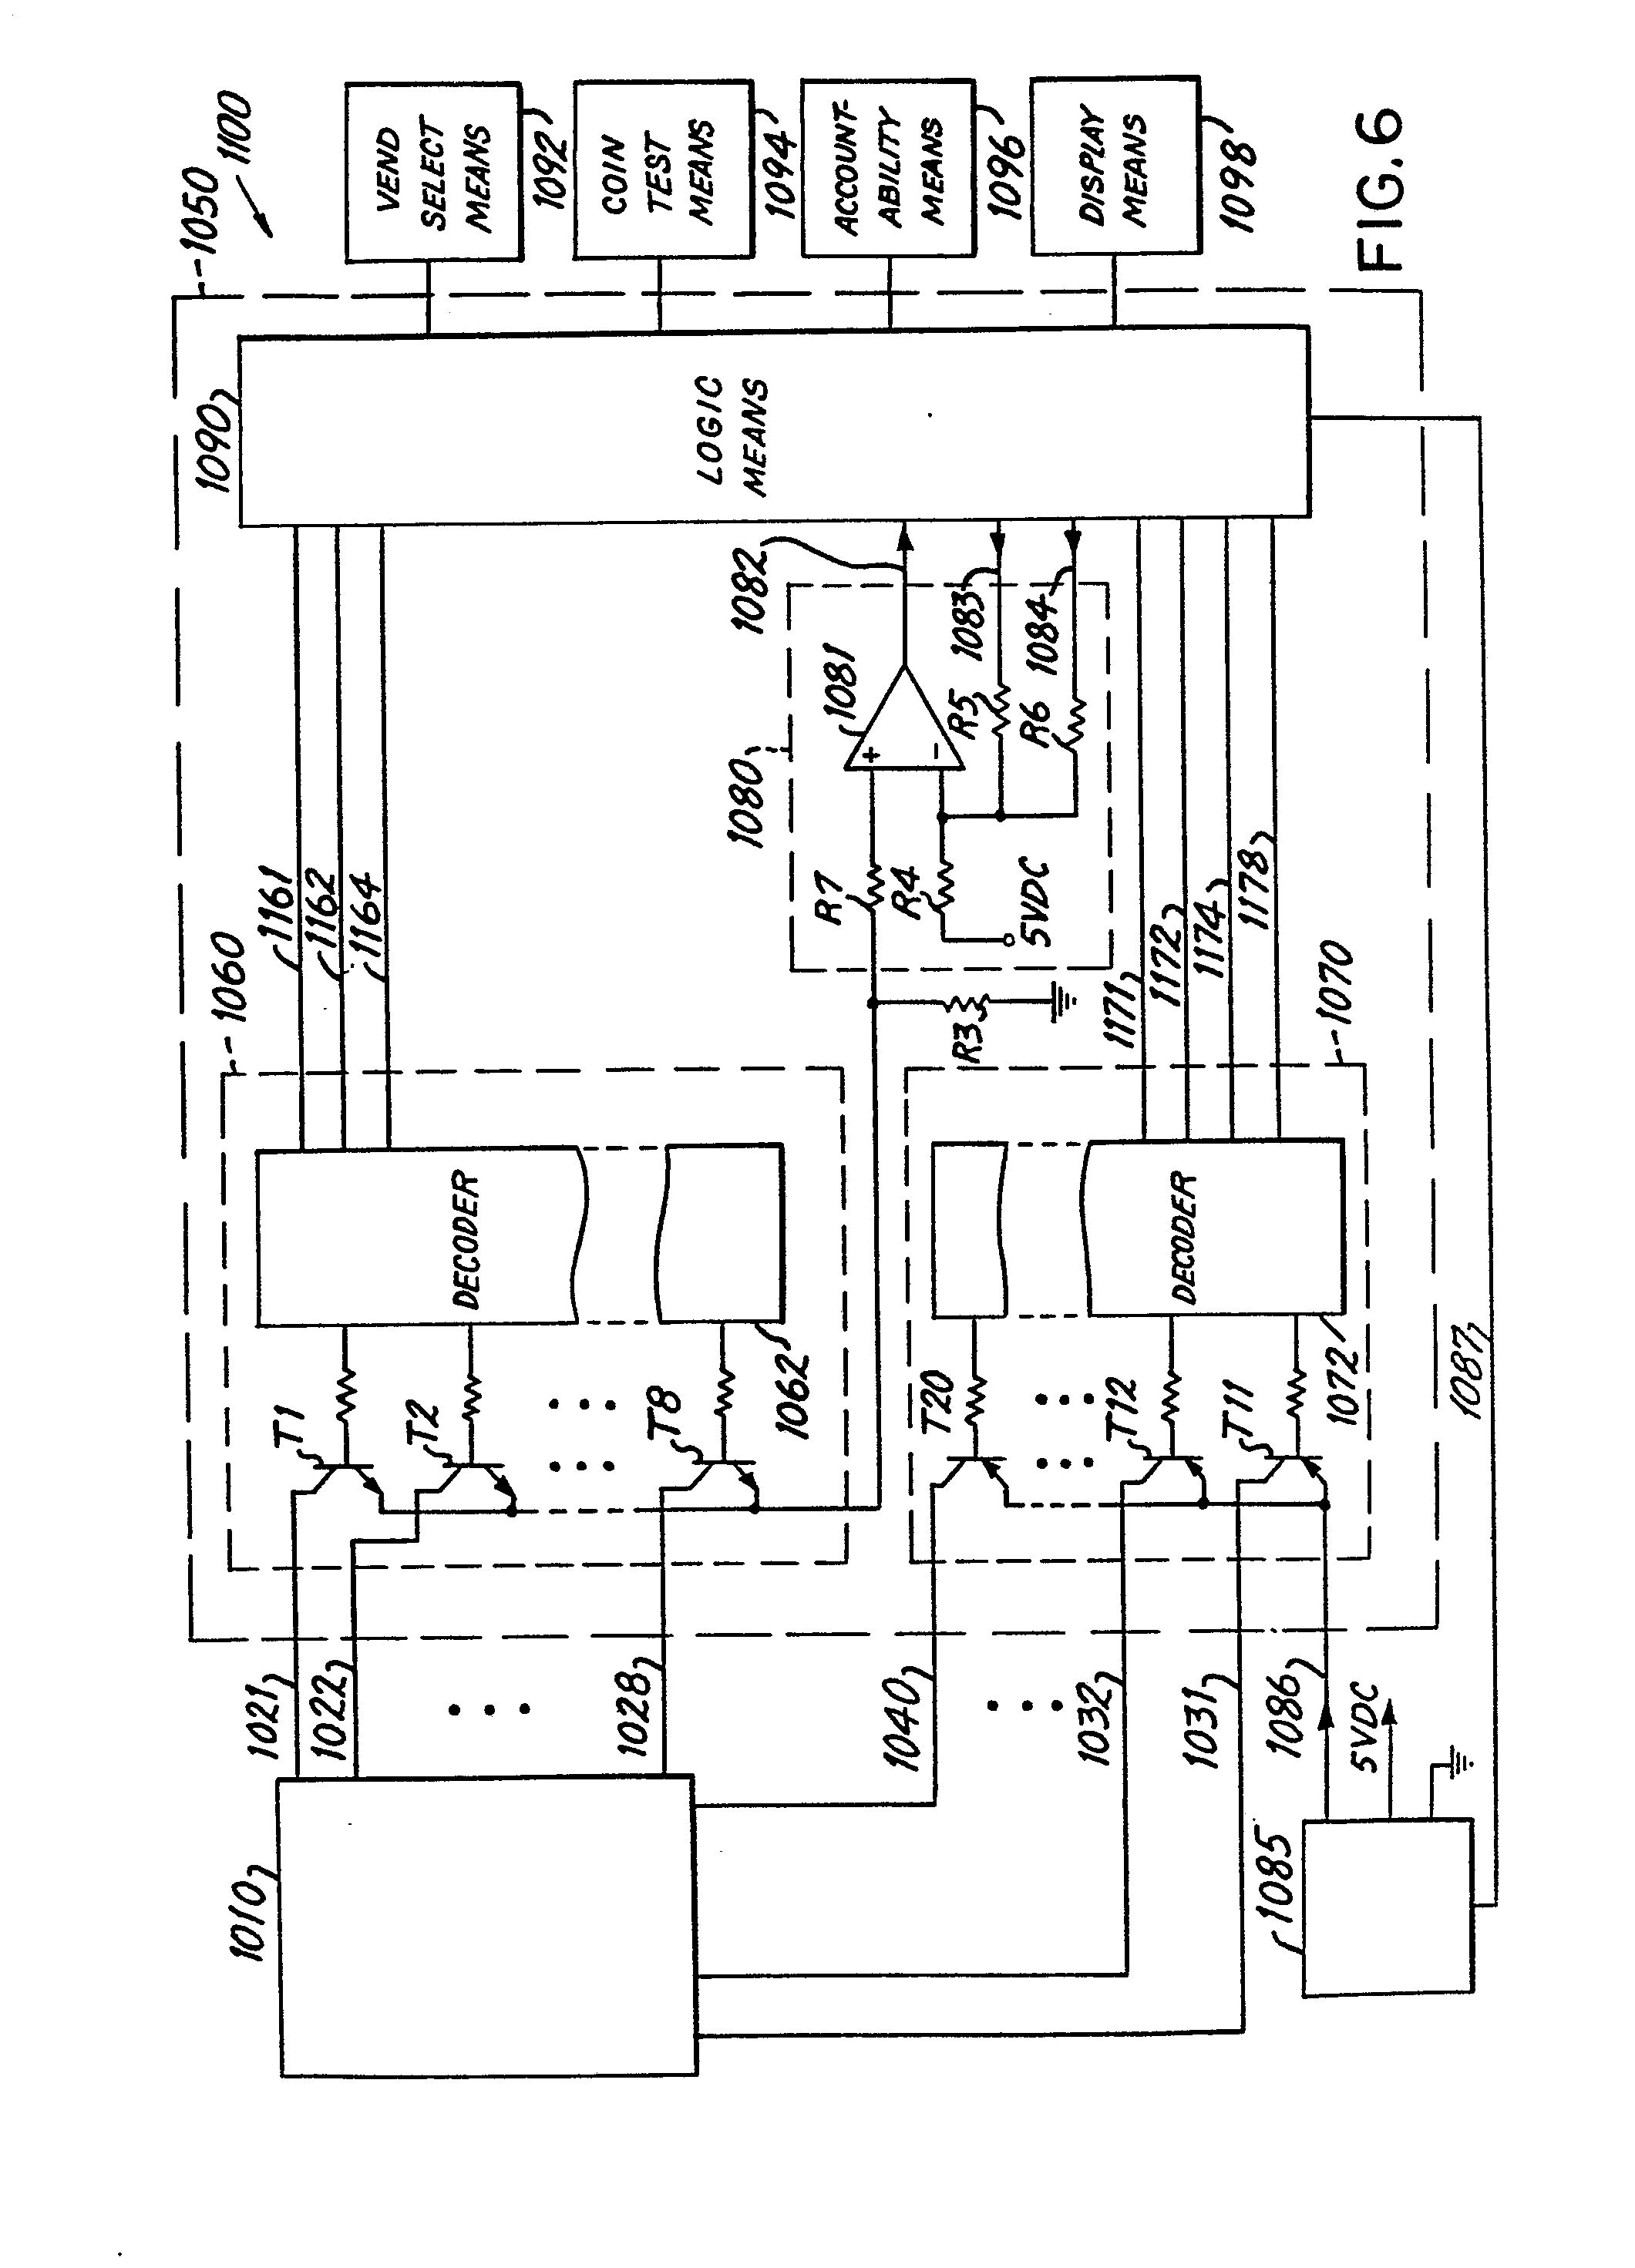 imgf0003 patent ep0063426a2 vending machine control and diagnostic narco 810 wiring diagram at creativeand.co